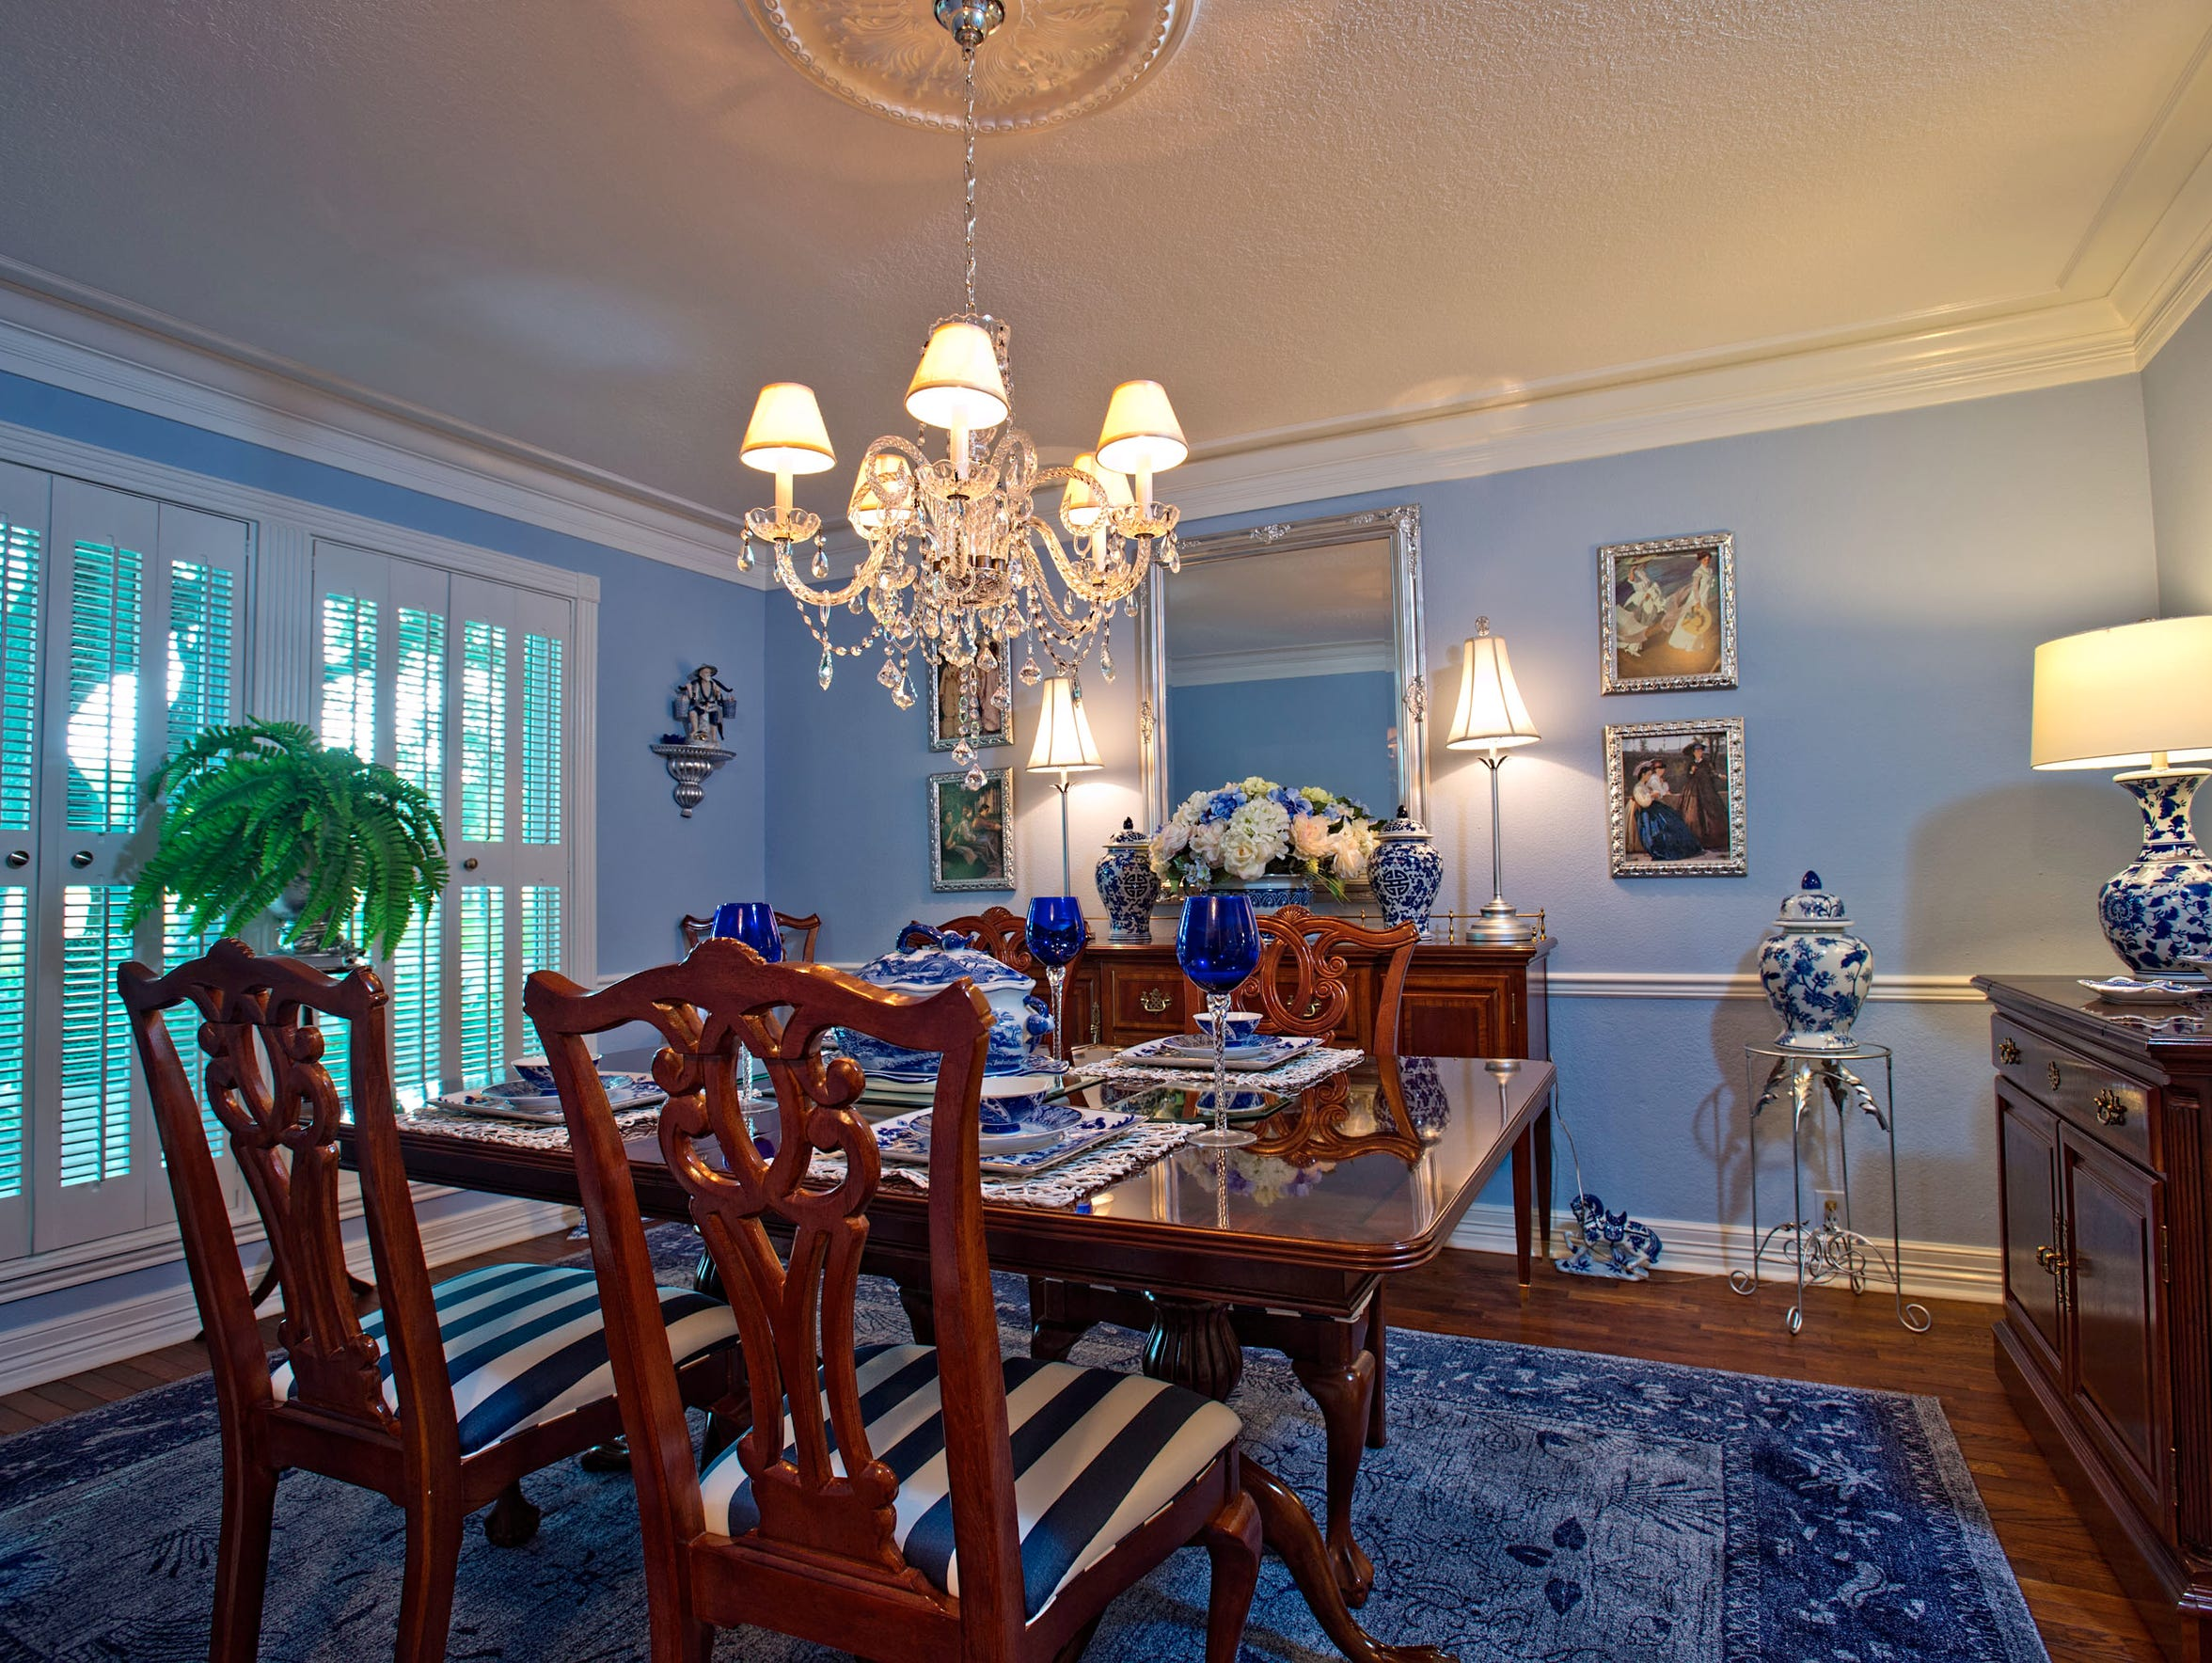 The formal dining area is picture perfect in baby blue